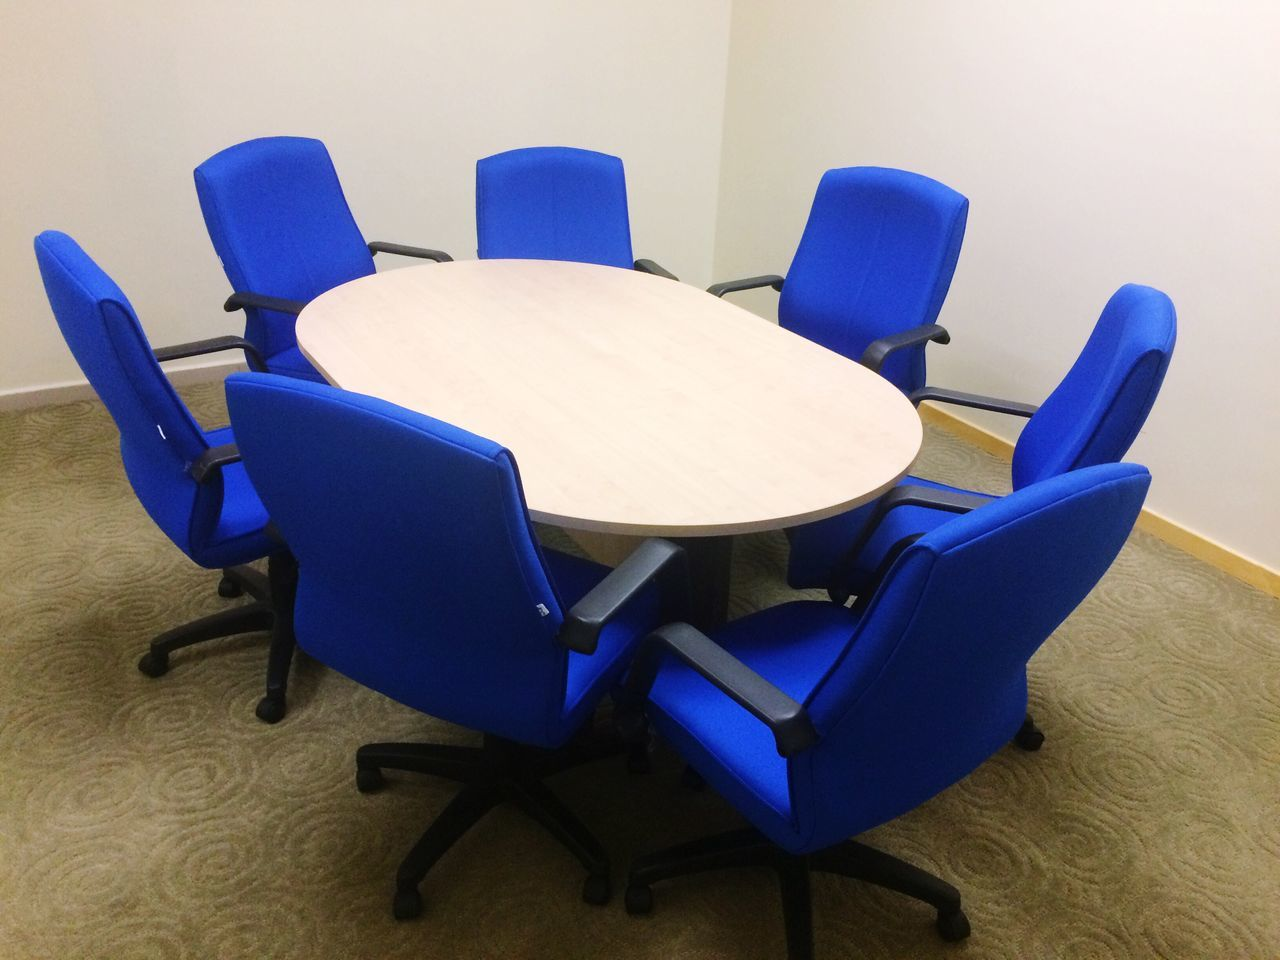 chair, empty, indoors, absence, table, blue, seat, no people, office chair, wood - material, furniture, armchair, purple, close-up, day